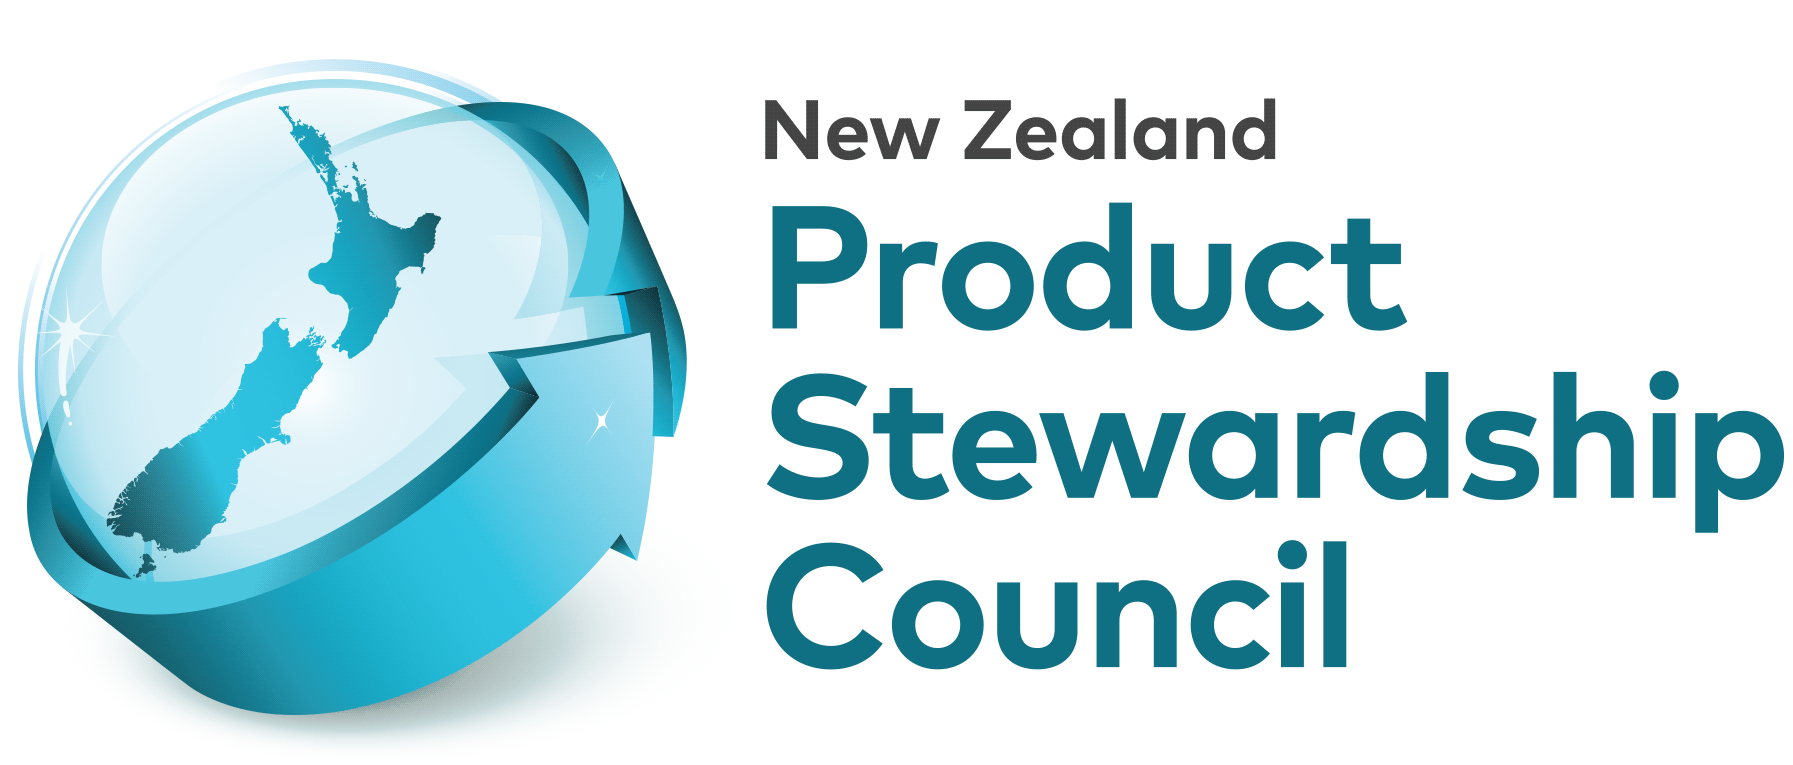 New Zealand Product Stewardship Council